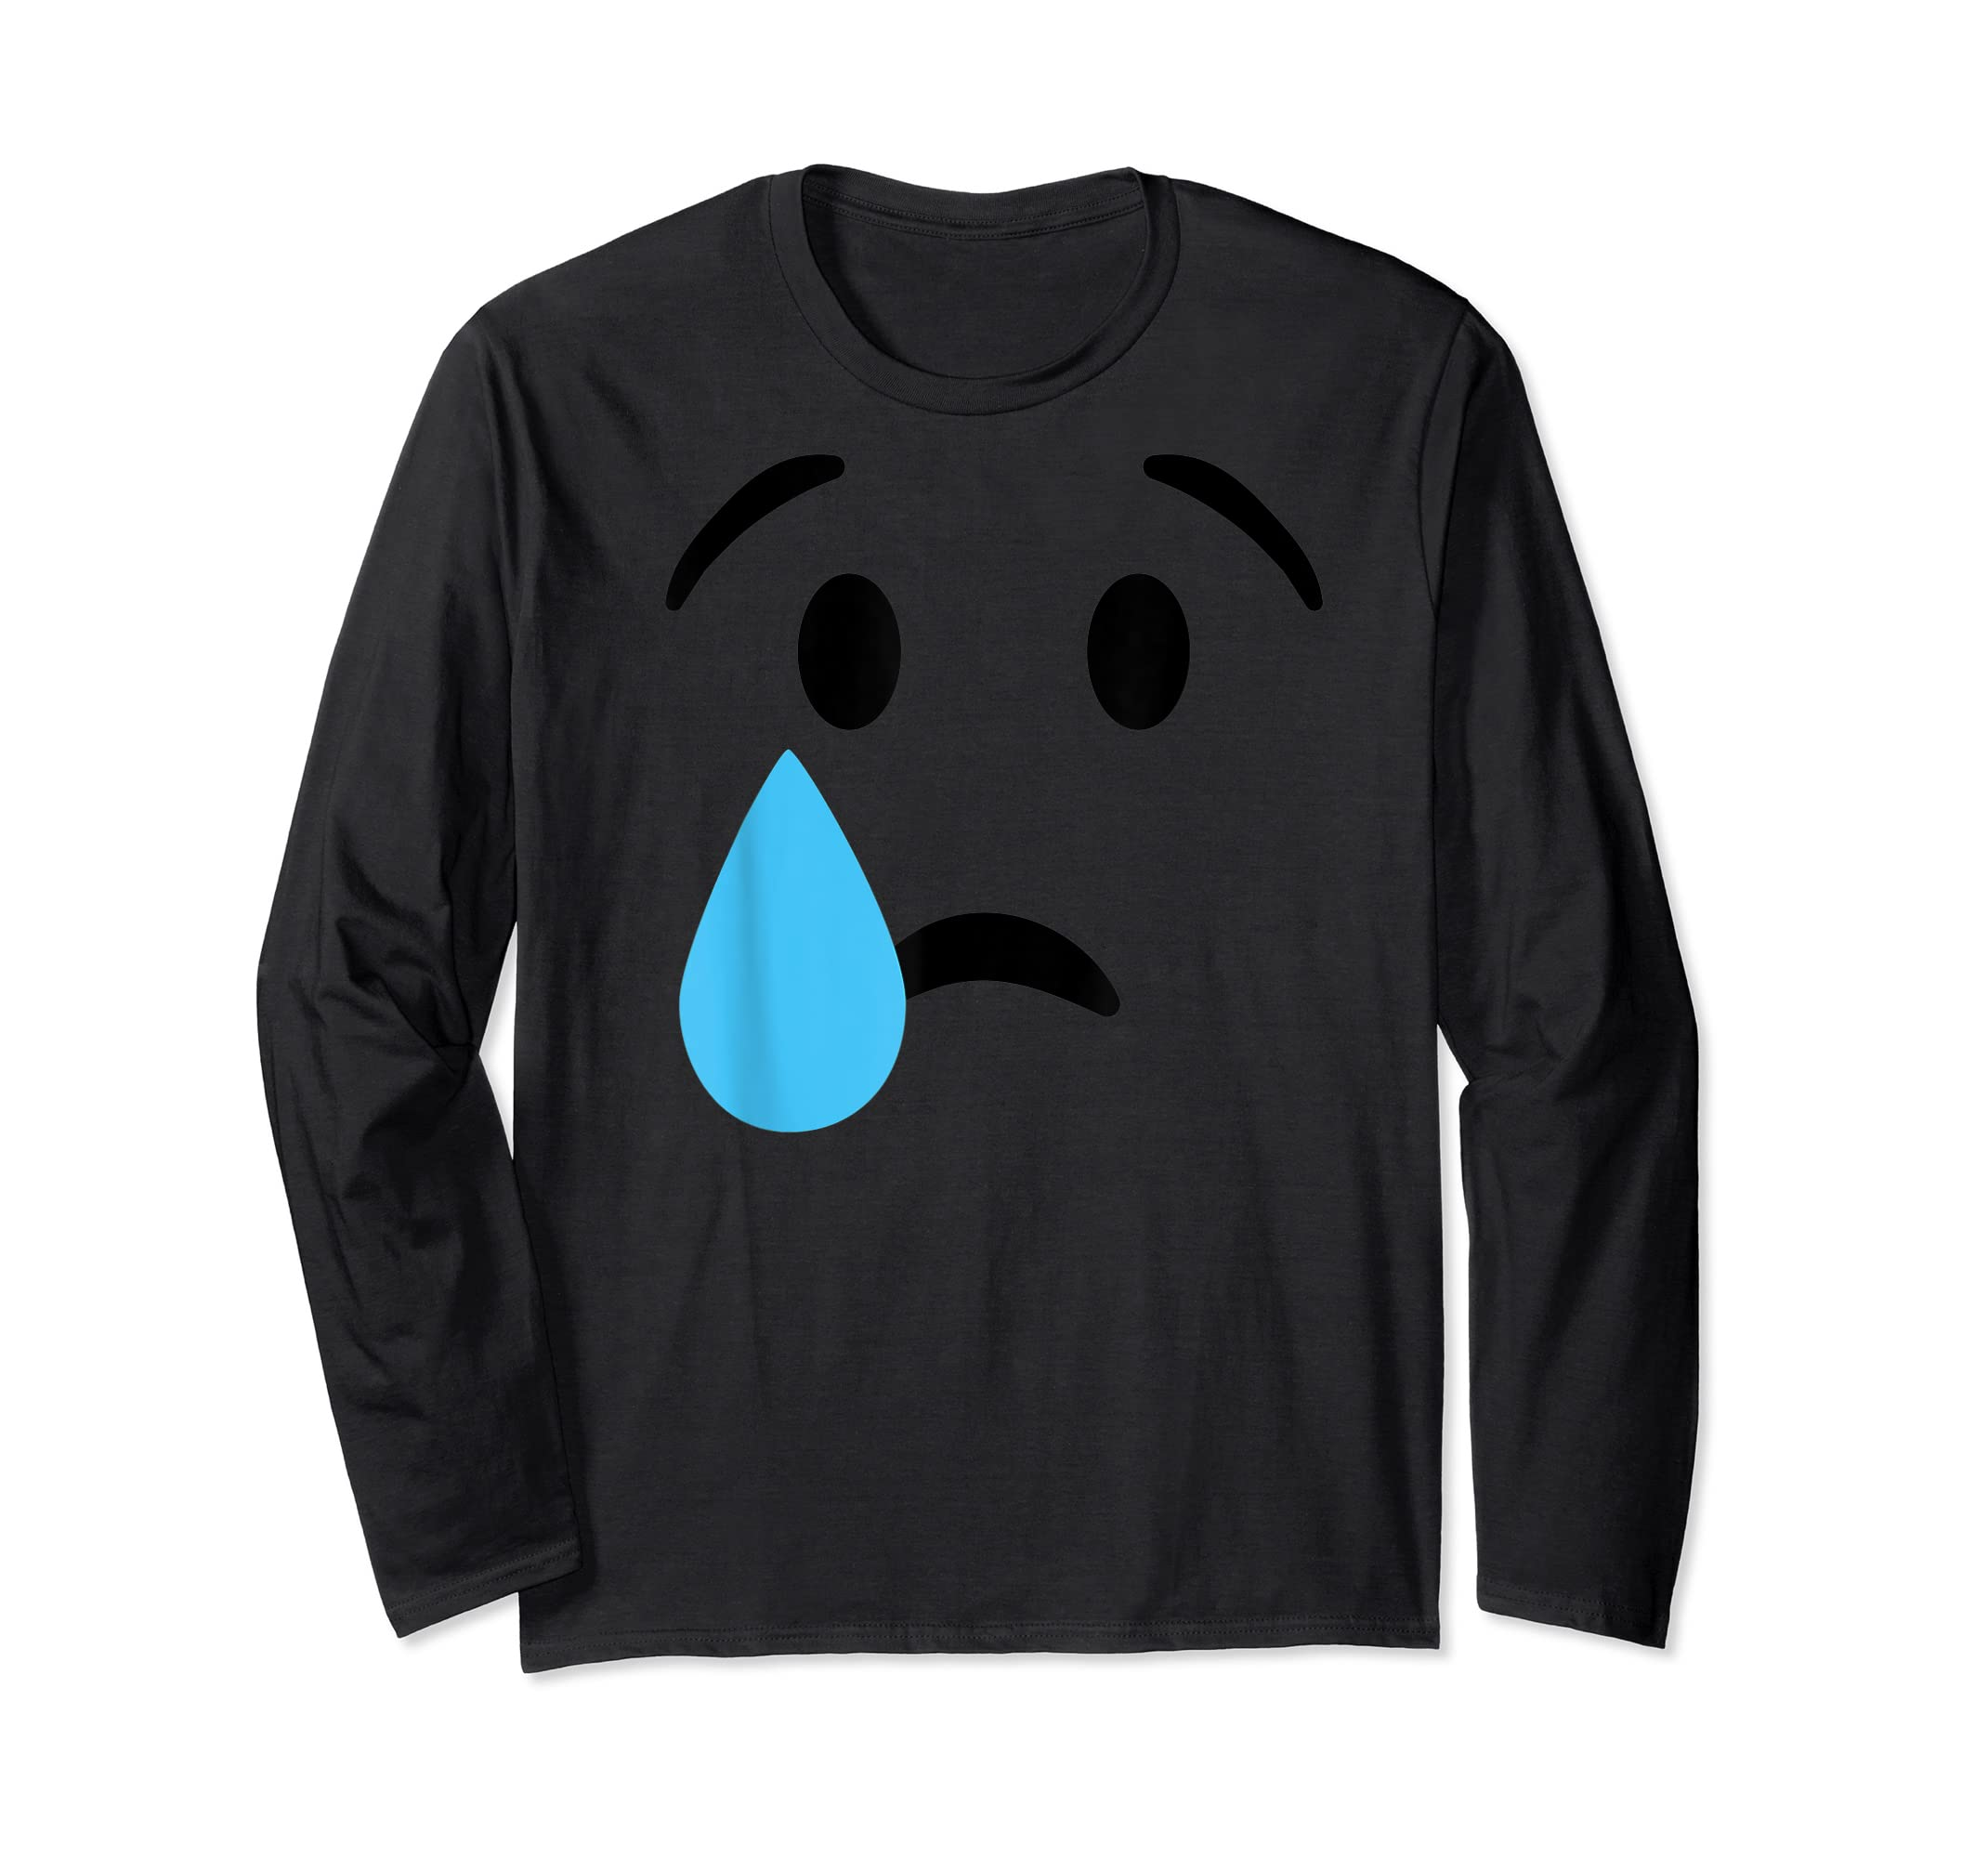 Sad Crying Tear Eyes Face Emojis Emoticon Halloween Costume T-Shirt-Long Sleeve-Black